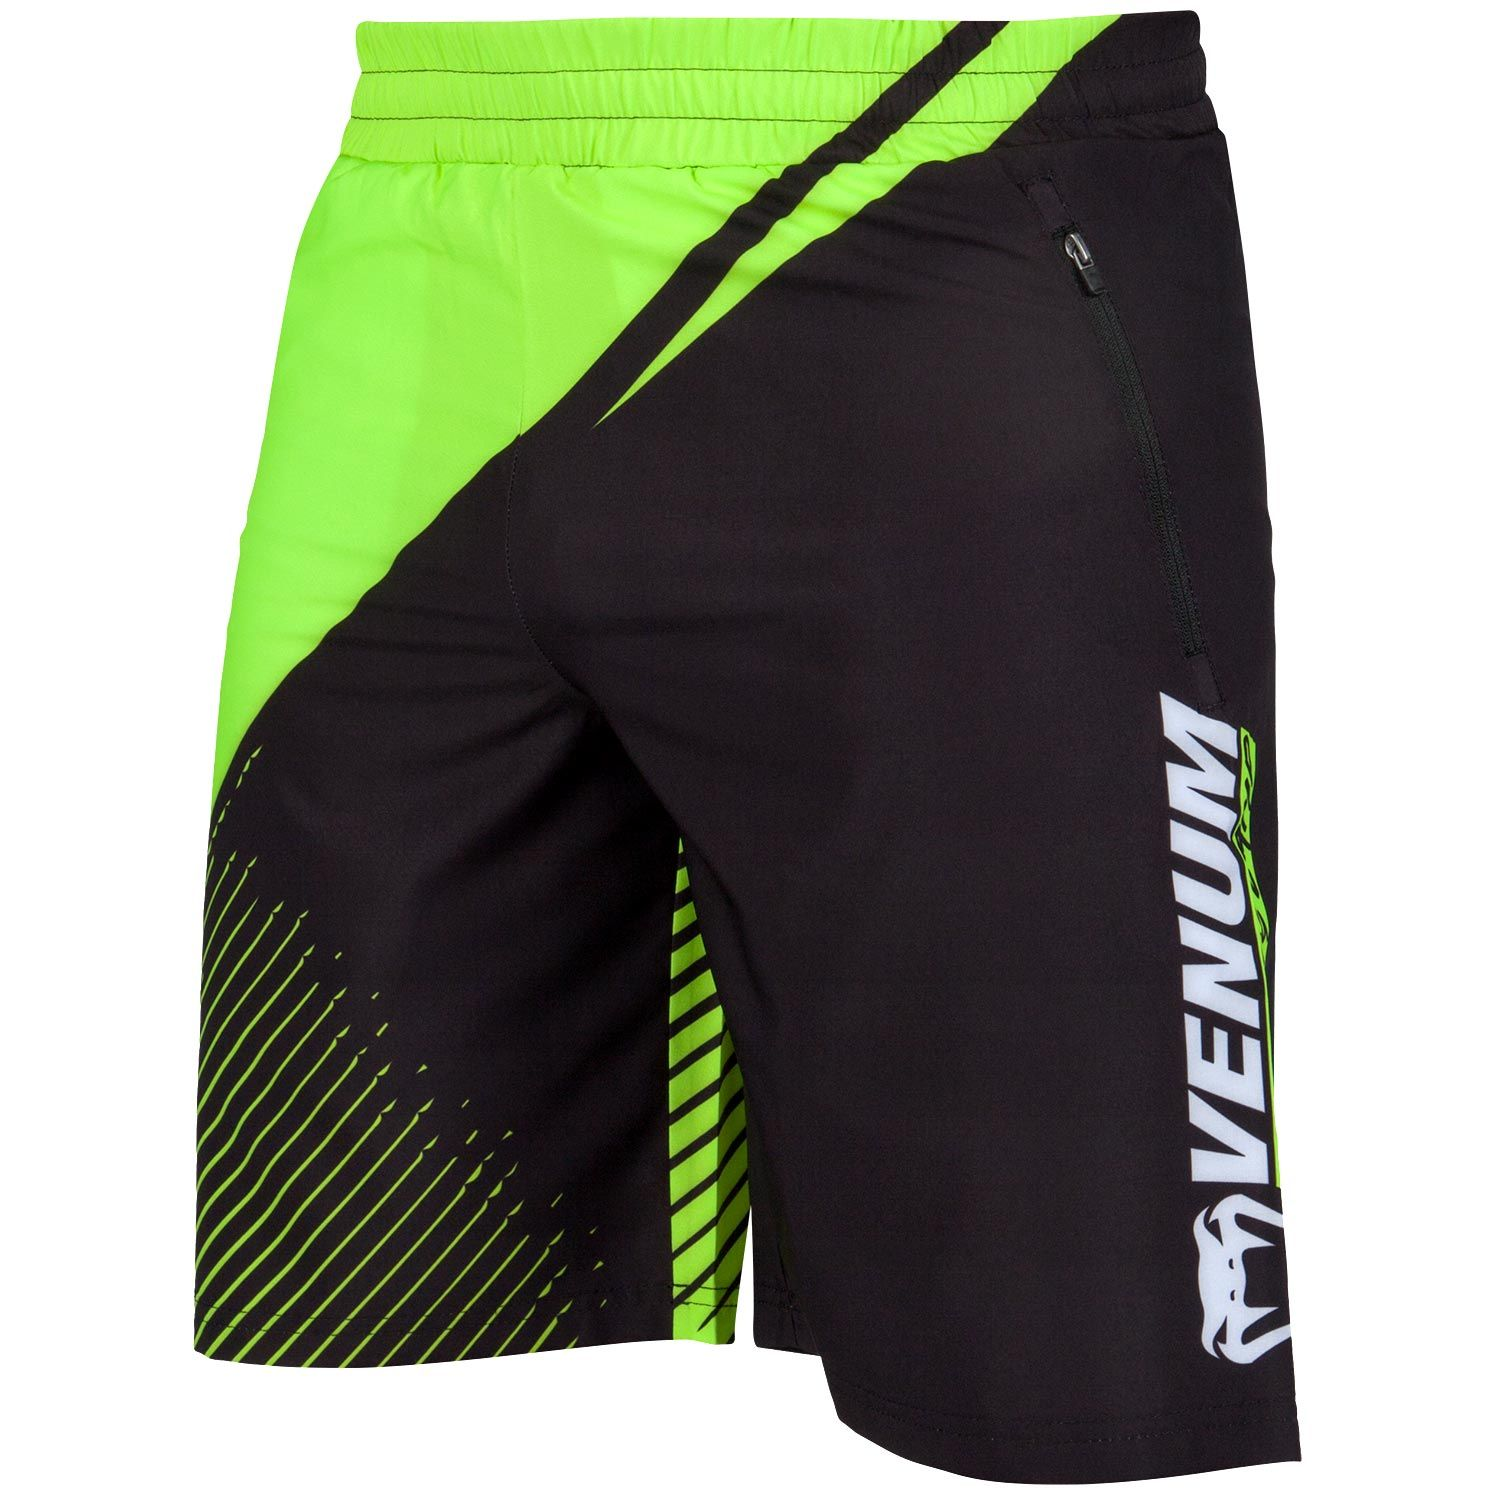 Venum Training Camp 2.0 Training Shorts | Minotaur Fight Store